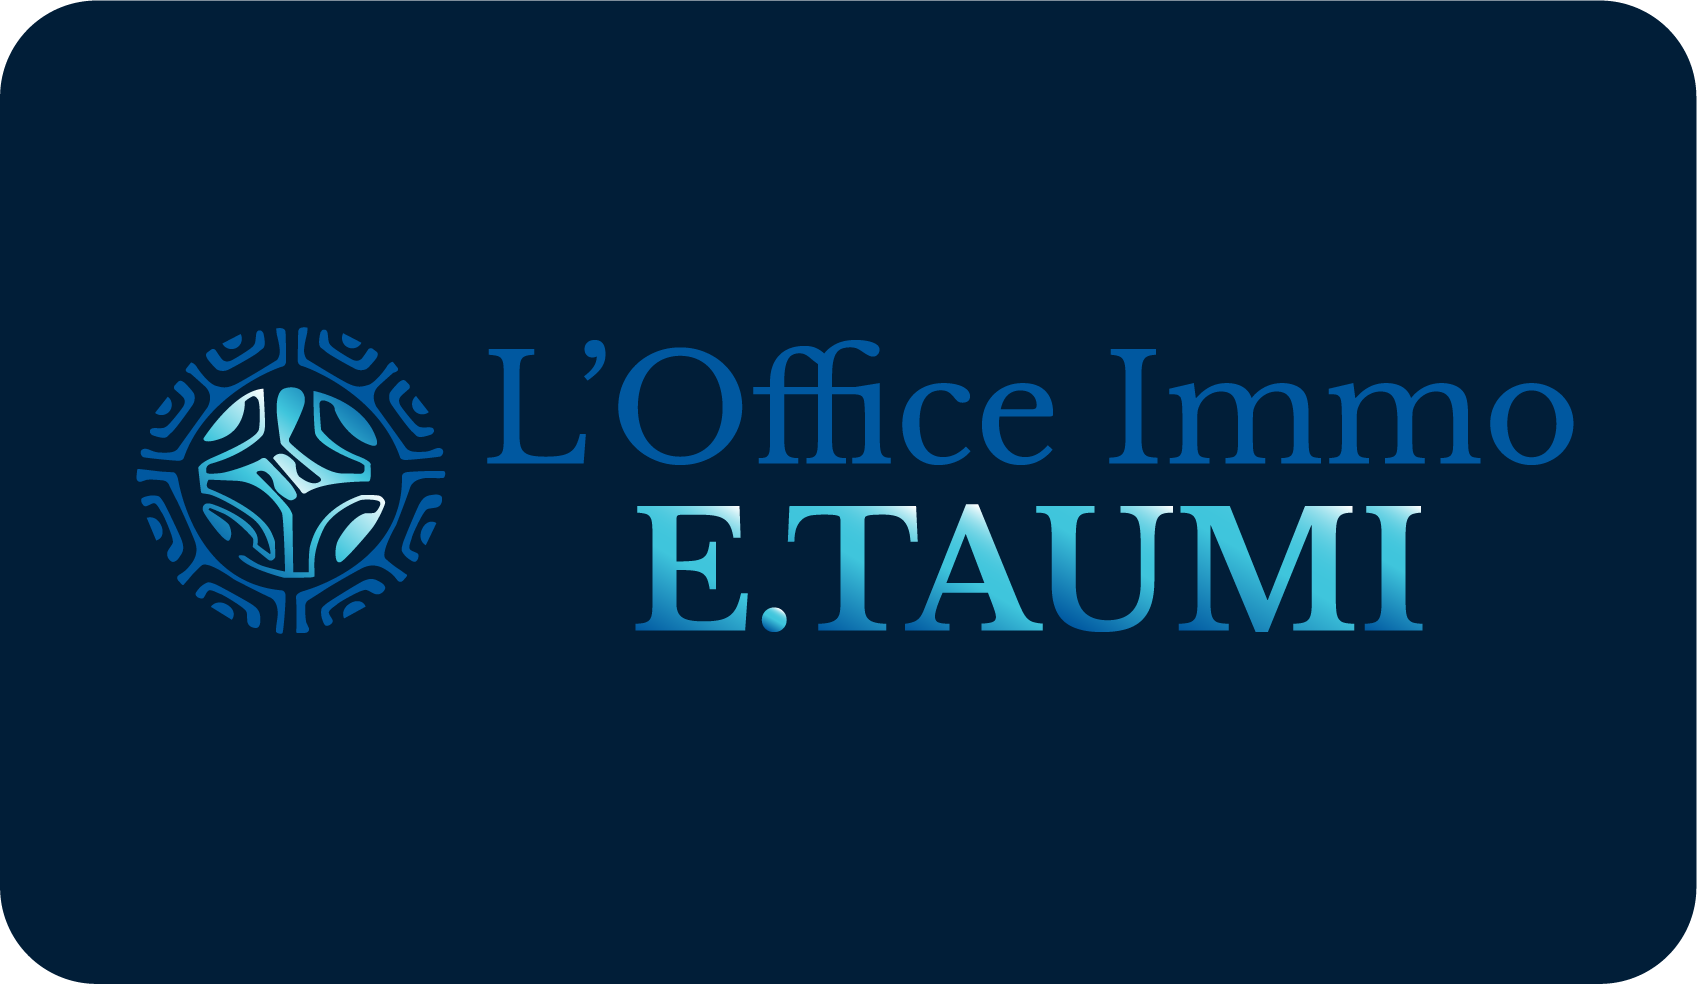 Logo L'Office Immo E.TAUMI - https://jenlidesign.com